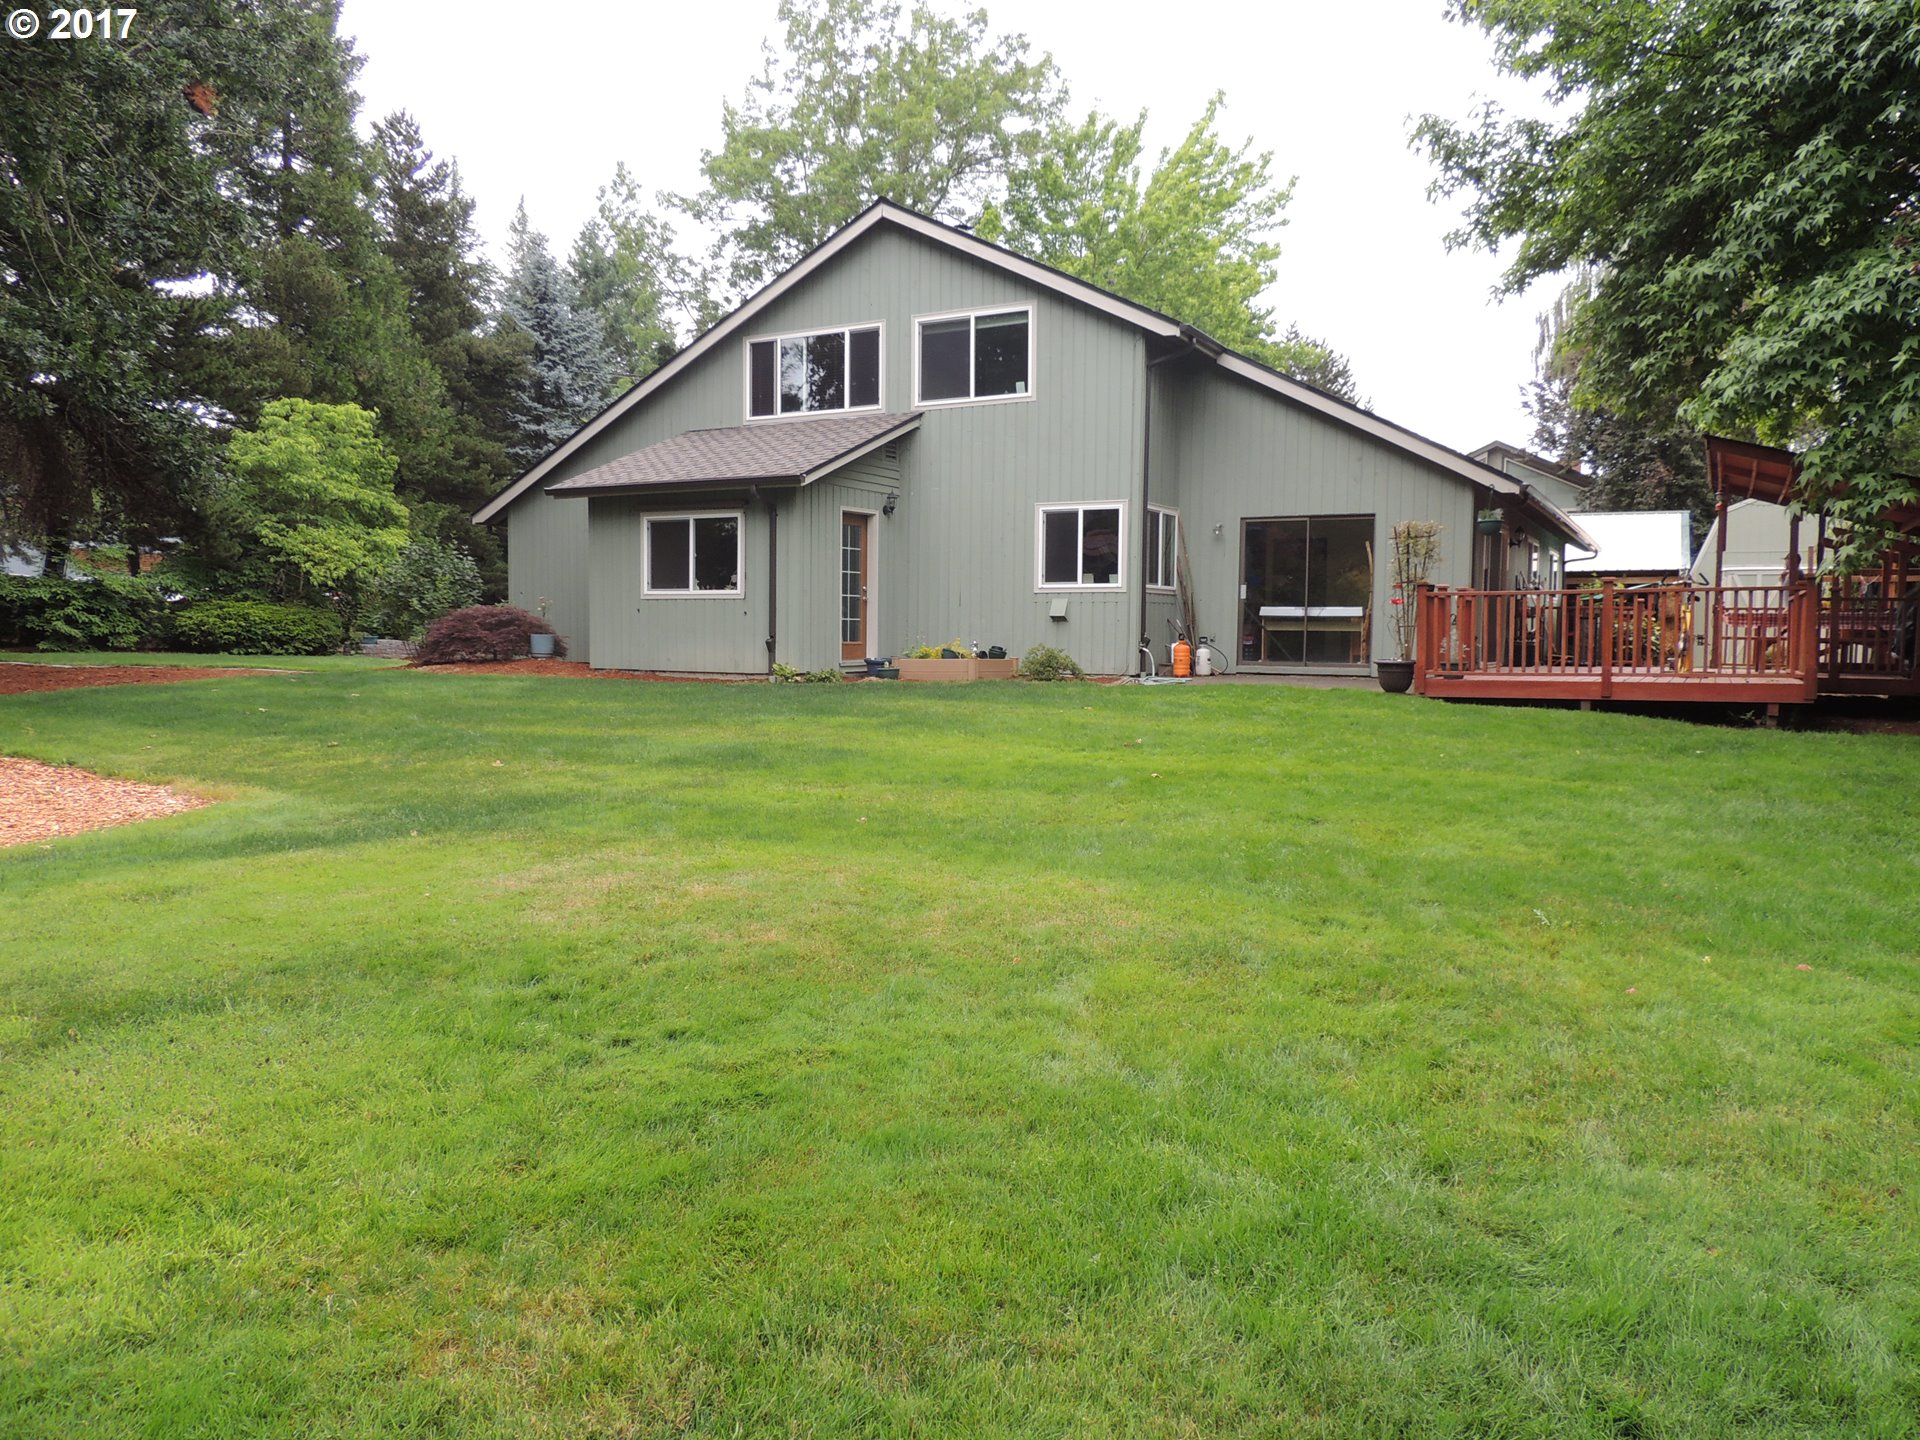 15010 NW WEST UNION RD Portland, OR 97229 - MLS #: 17326380